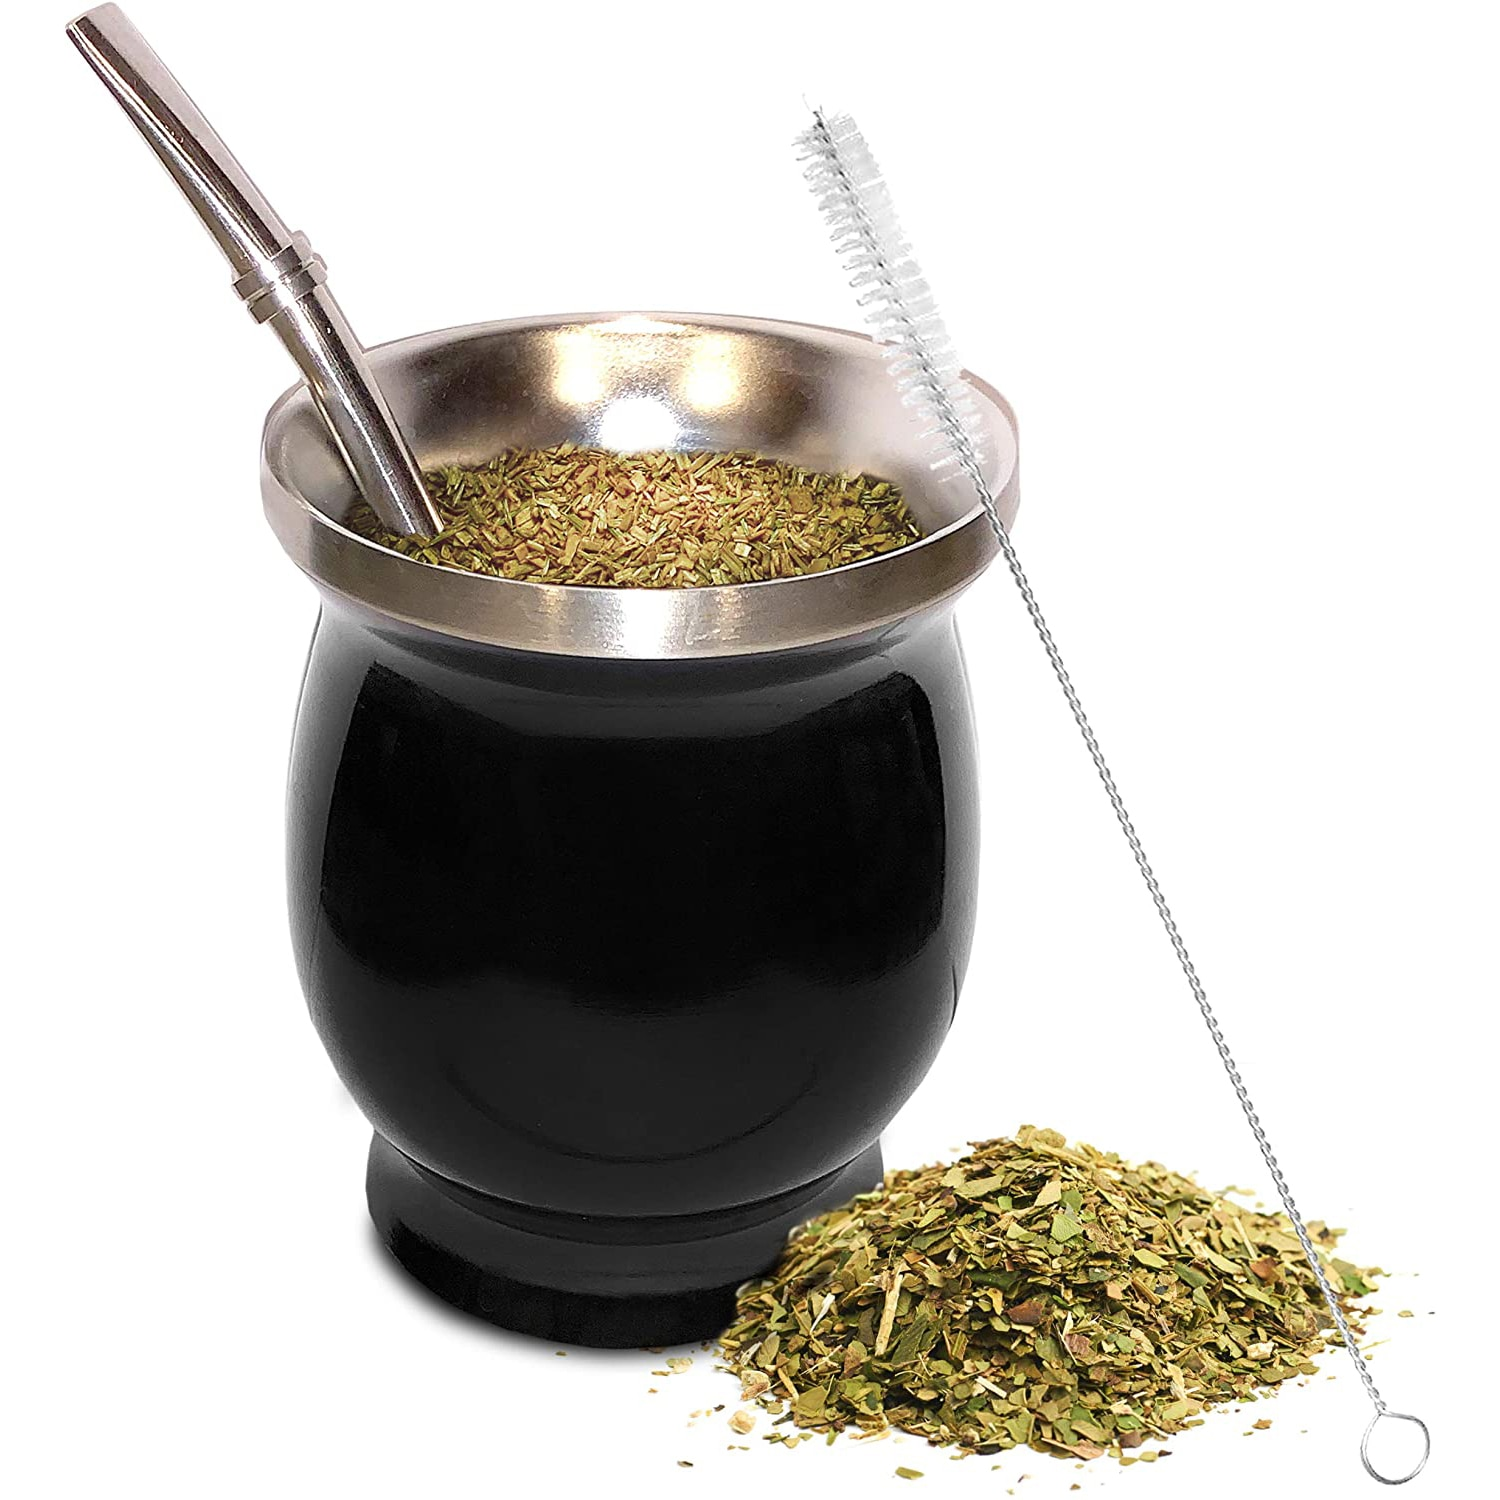 Yerba Mate Natural Gourd/Tea Cup Set 8 Ounces Bombillas Yerba Mate Straw,Cleaning Brush,Stainless Steel,Double-Walled,Easy Clean